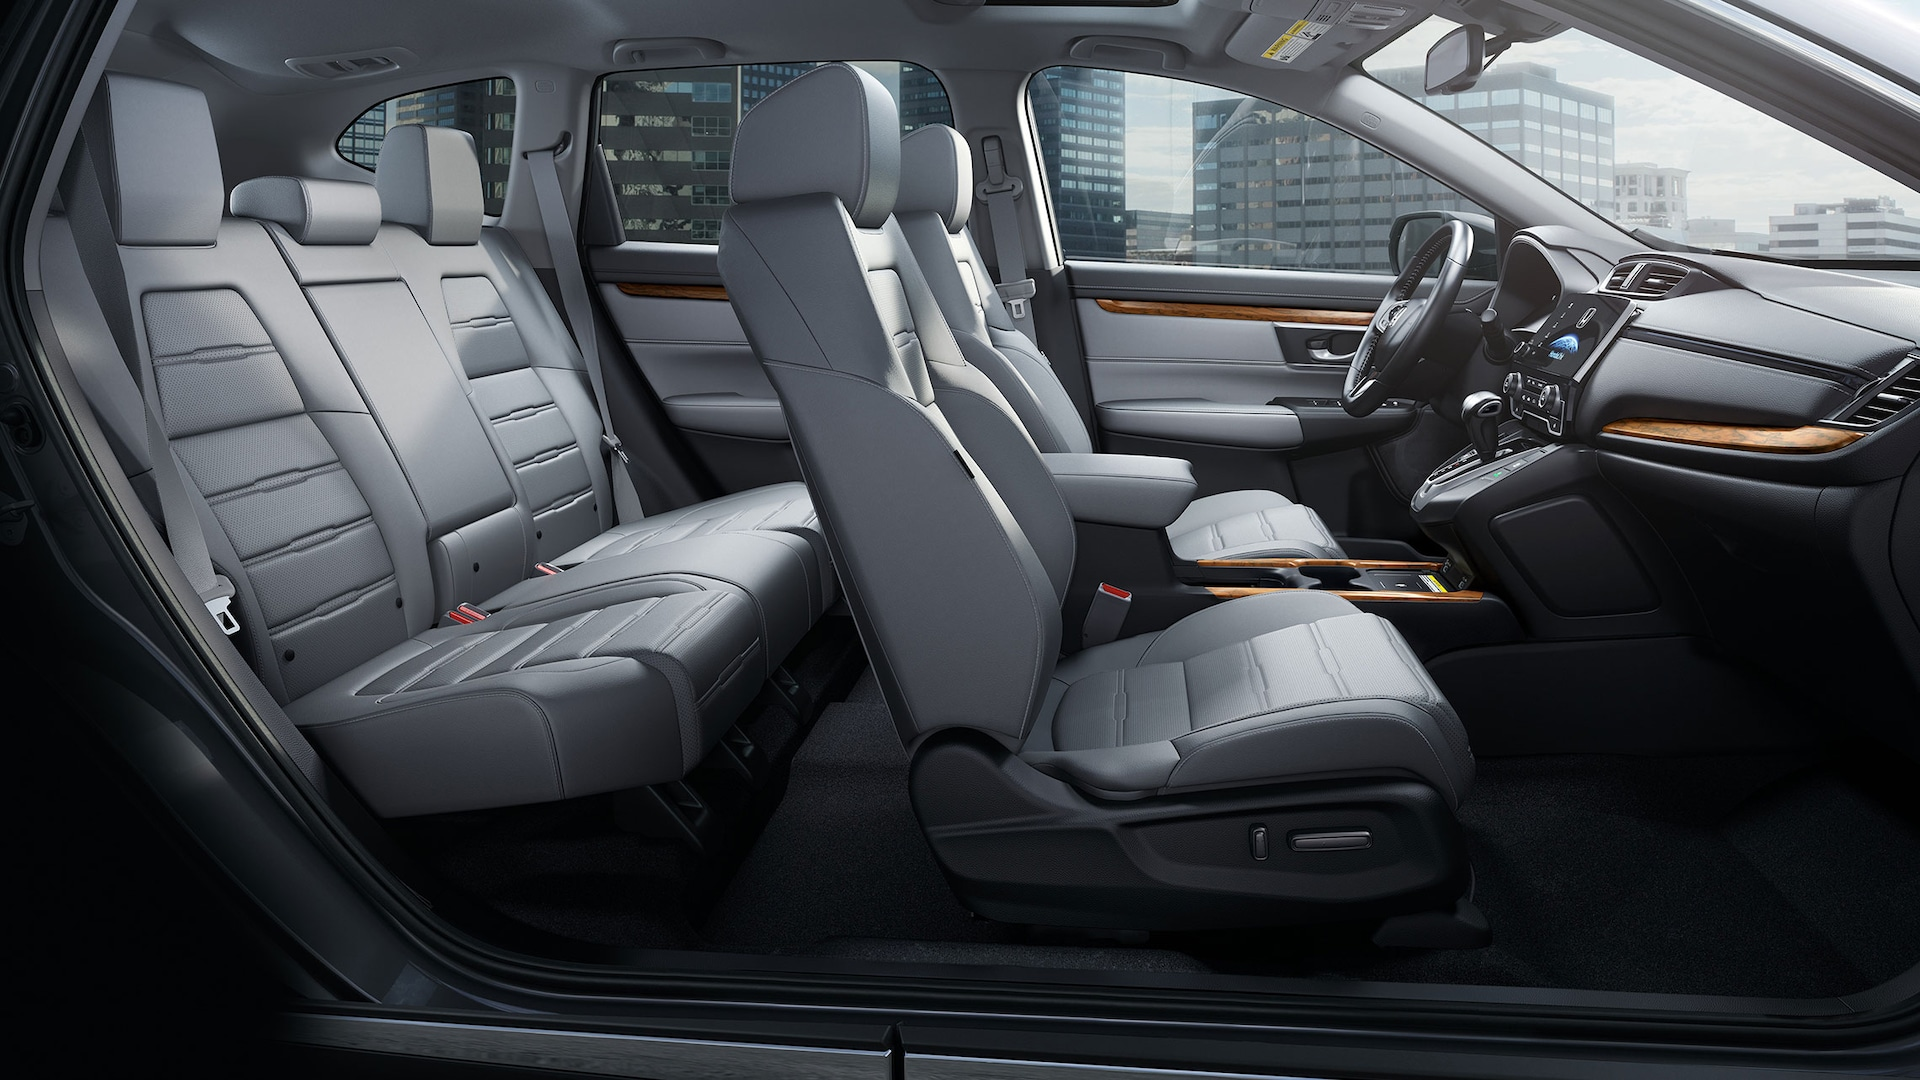 Interior passenger-side view of 2020 Honda CR-V with Gray Leather interior.